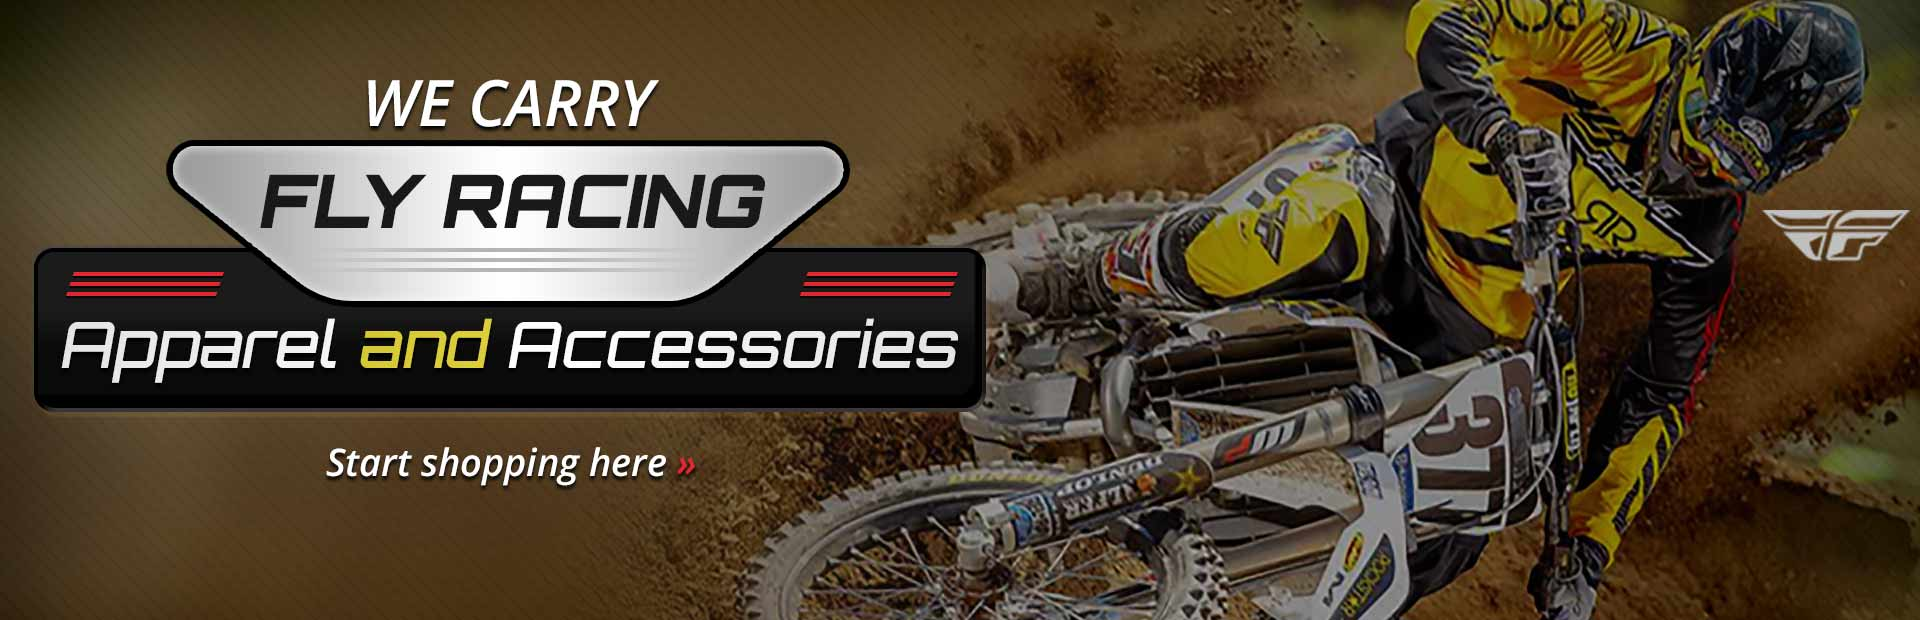 Fly Racing Apparel and Accessories: Click here to shop online.